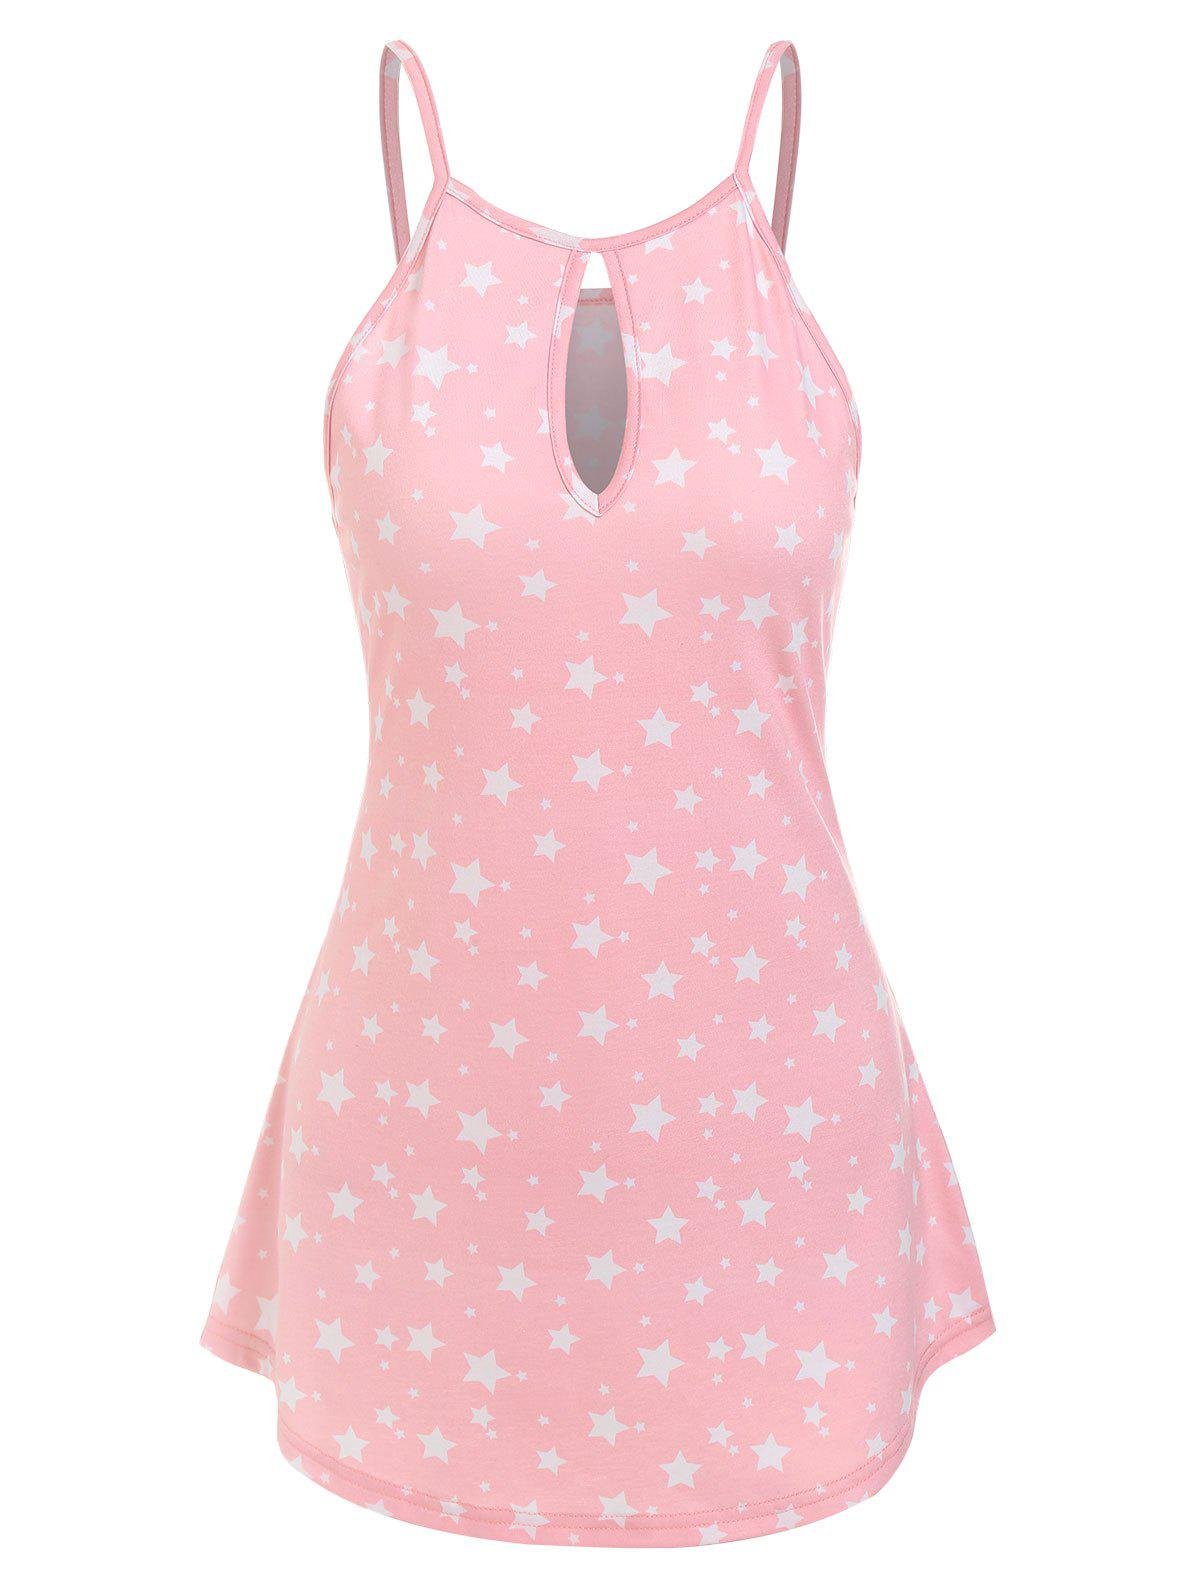 Affordable Keyhole Stars Printed Tank Top